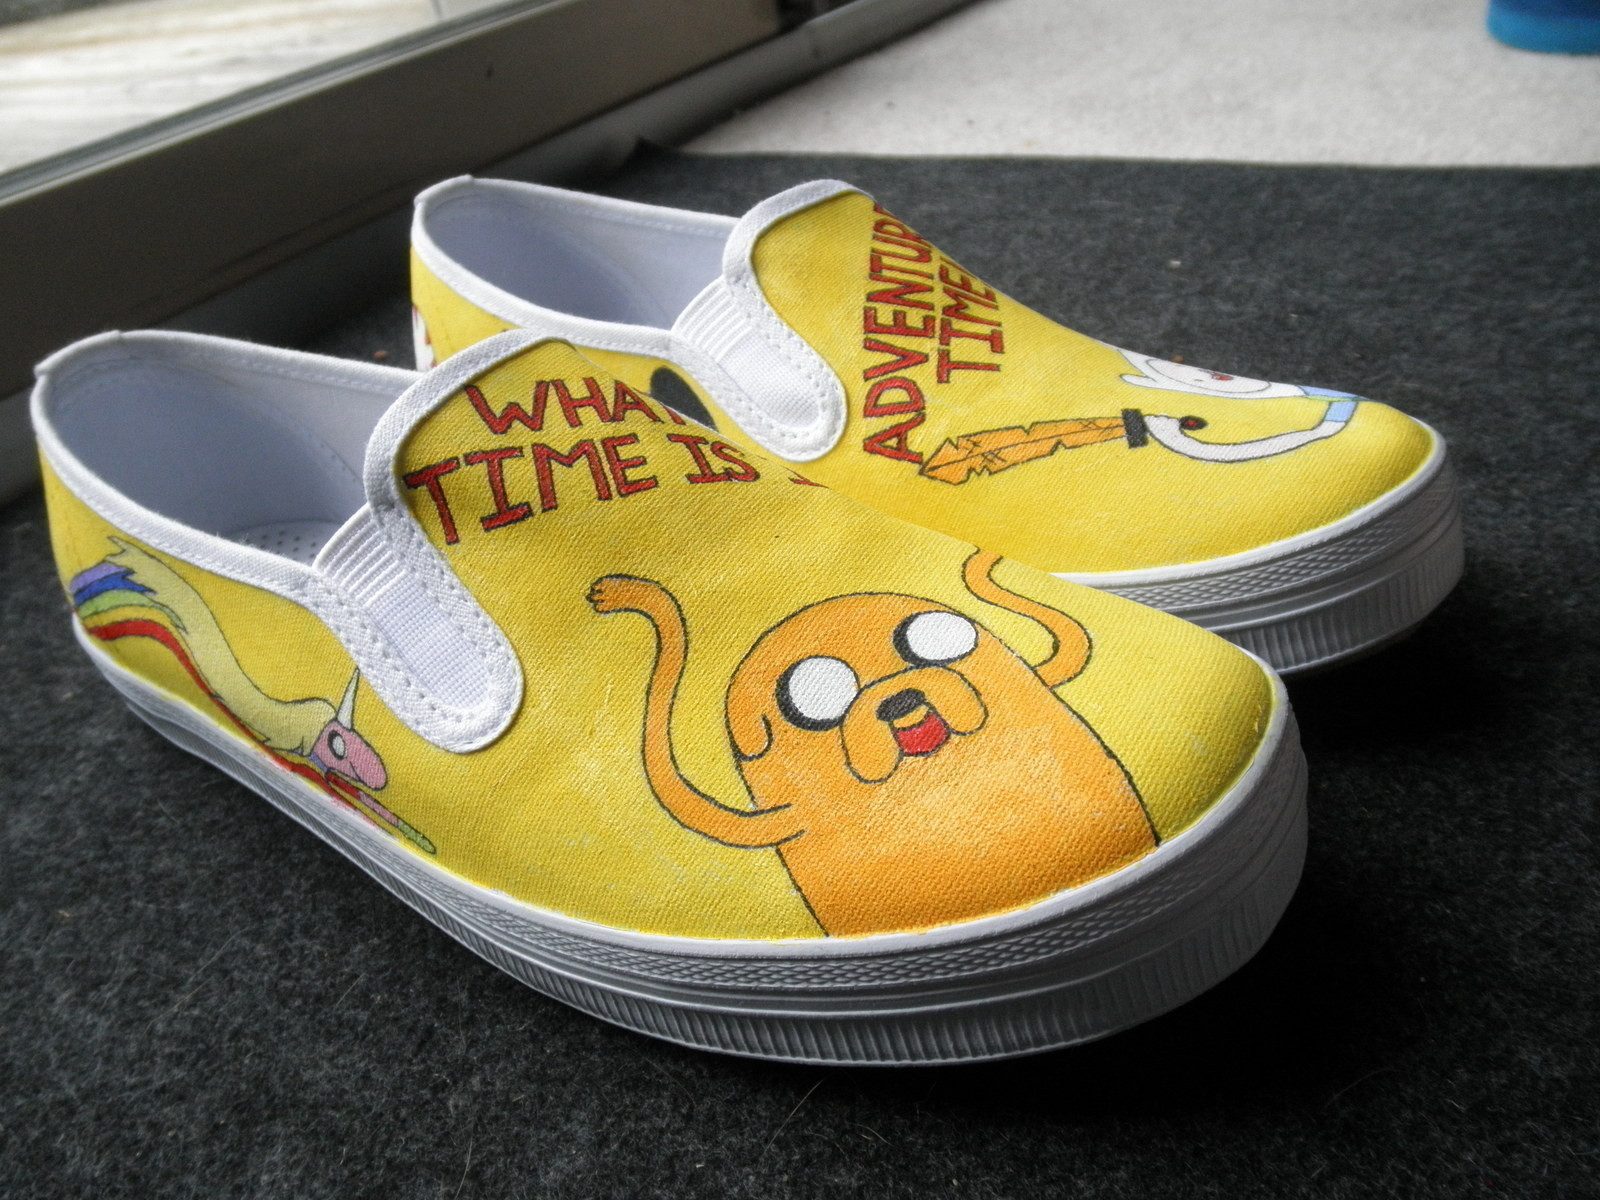 Adventure Time Shoes 183 How To Paint A Pair Of Character